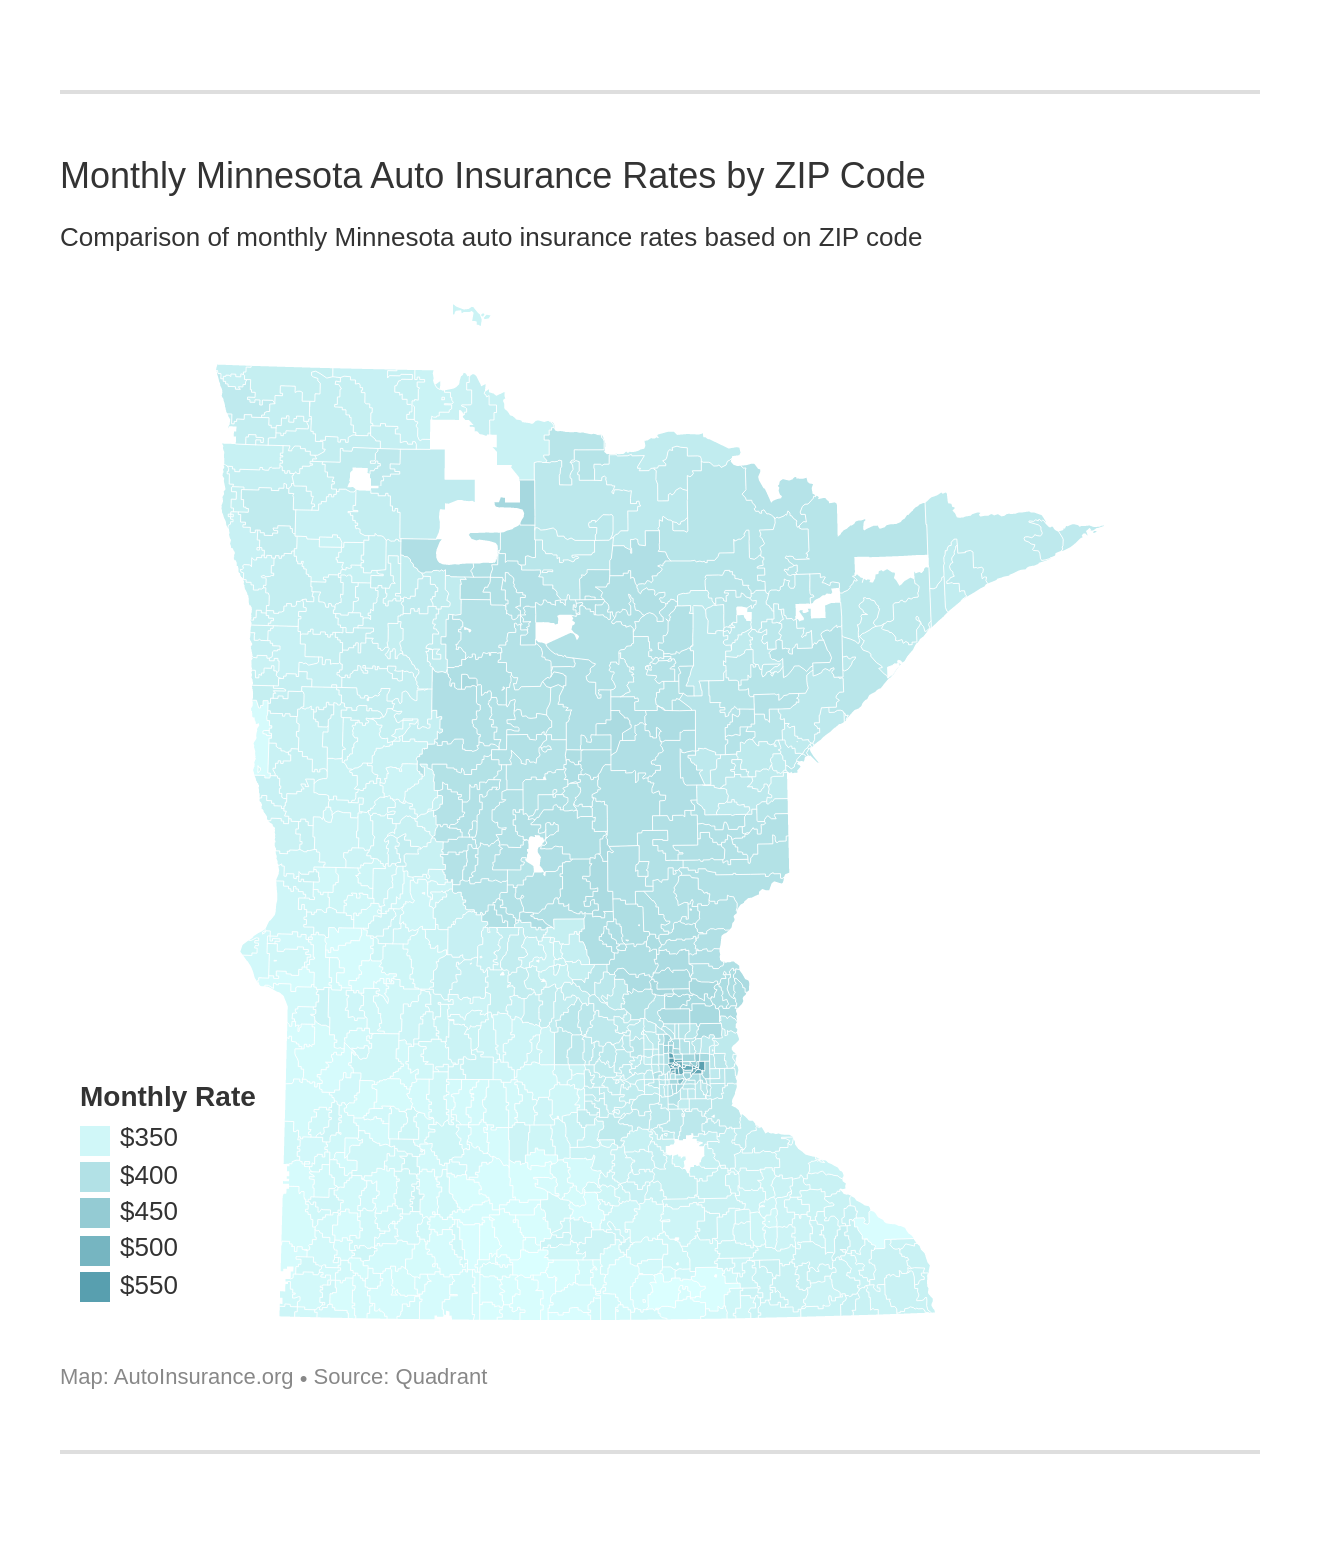 Monthly Minnesota Auto Insurance Rates by ZIP Code